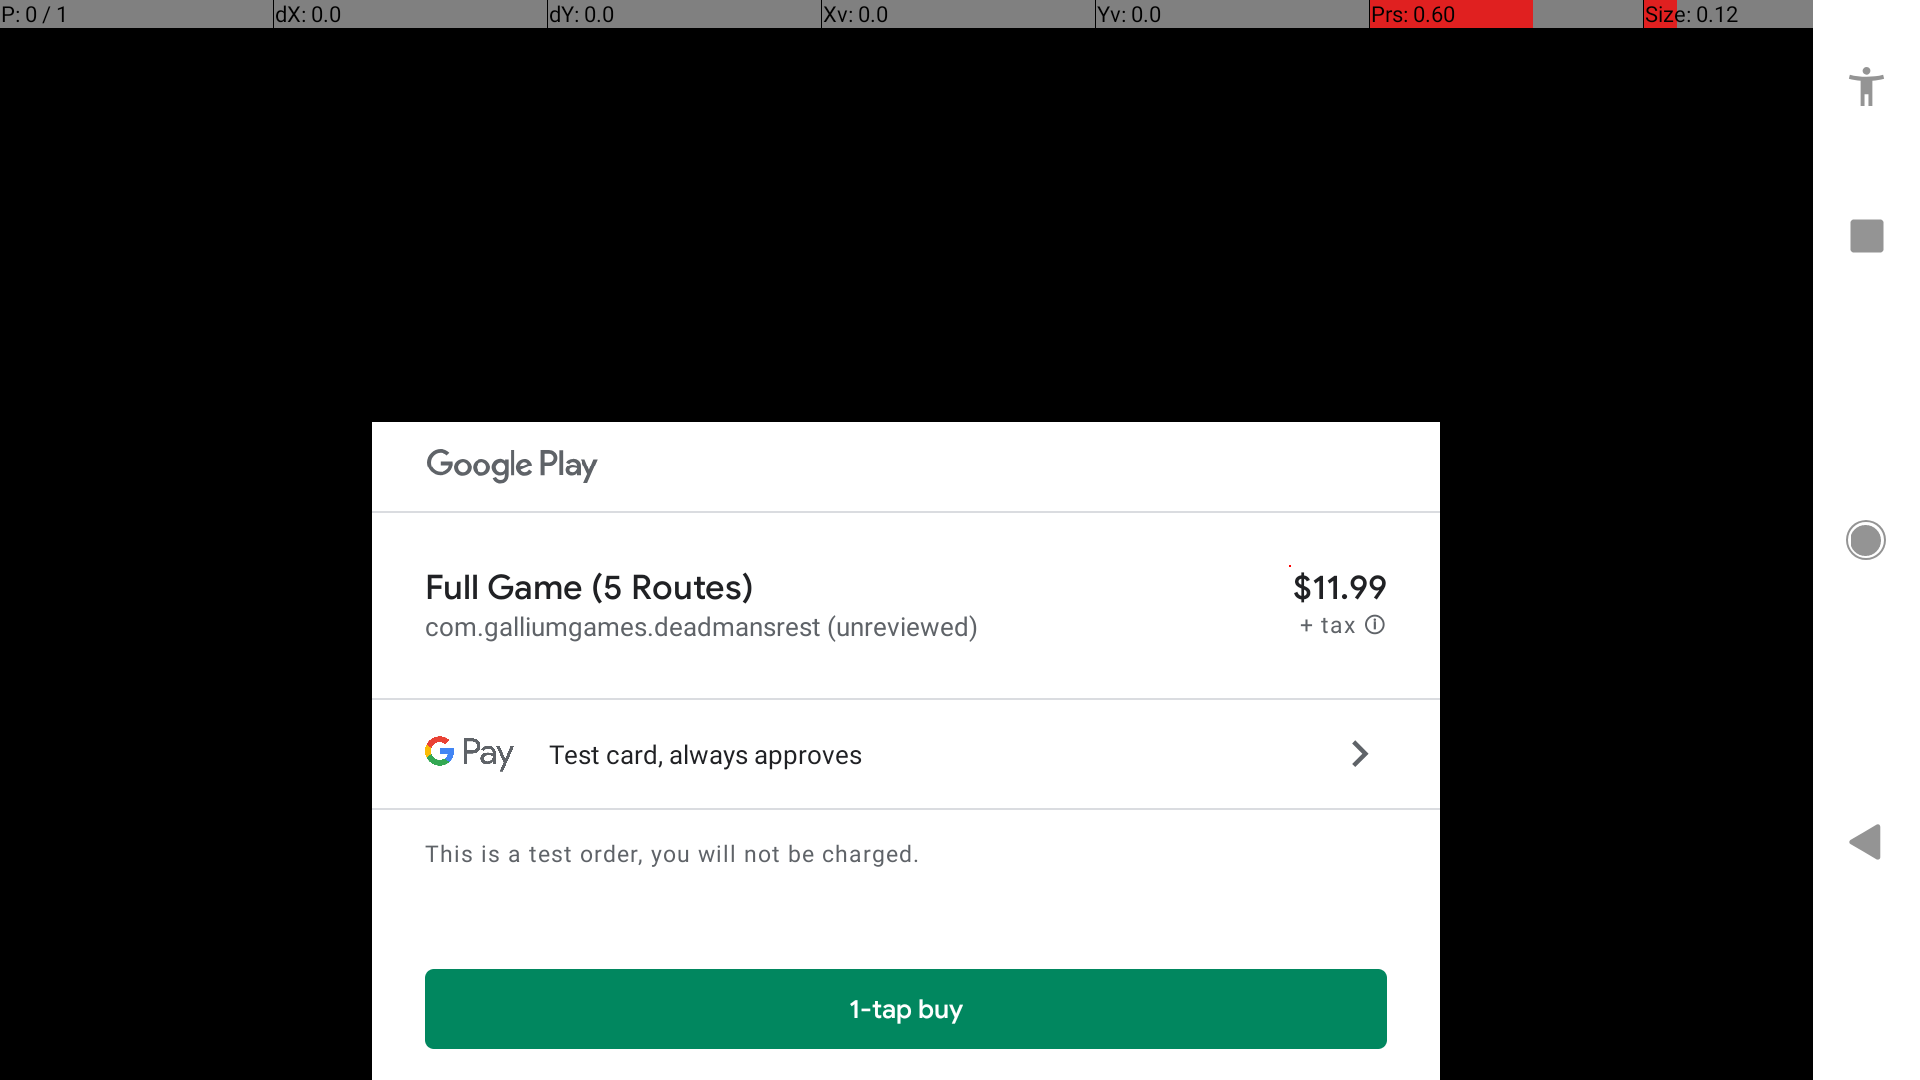 black background, google play pop up asking if you want to make an in-app purchase